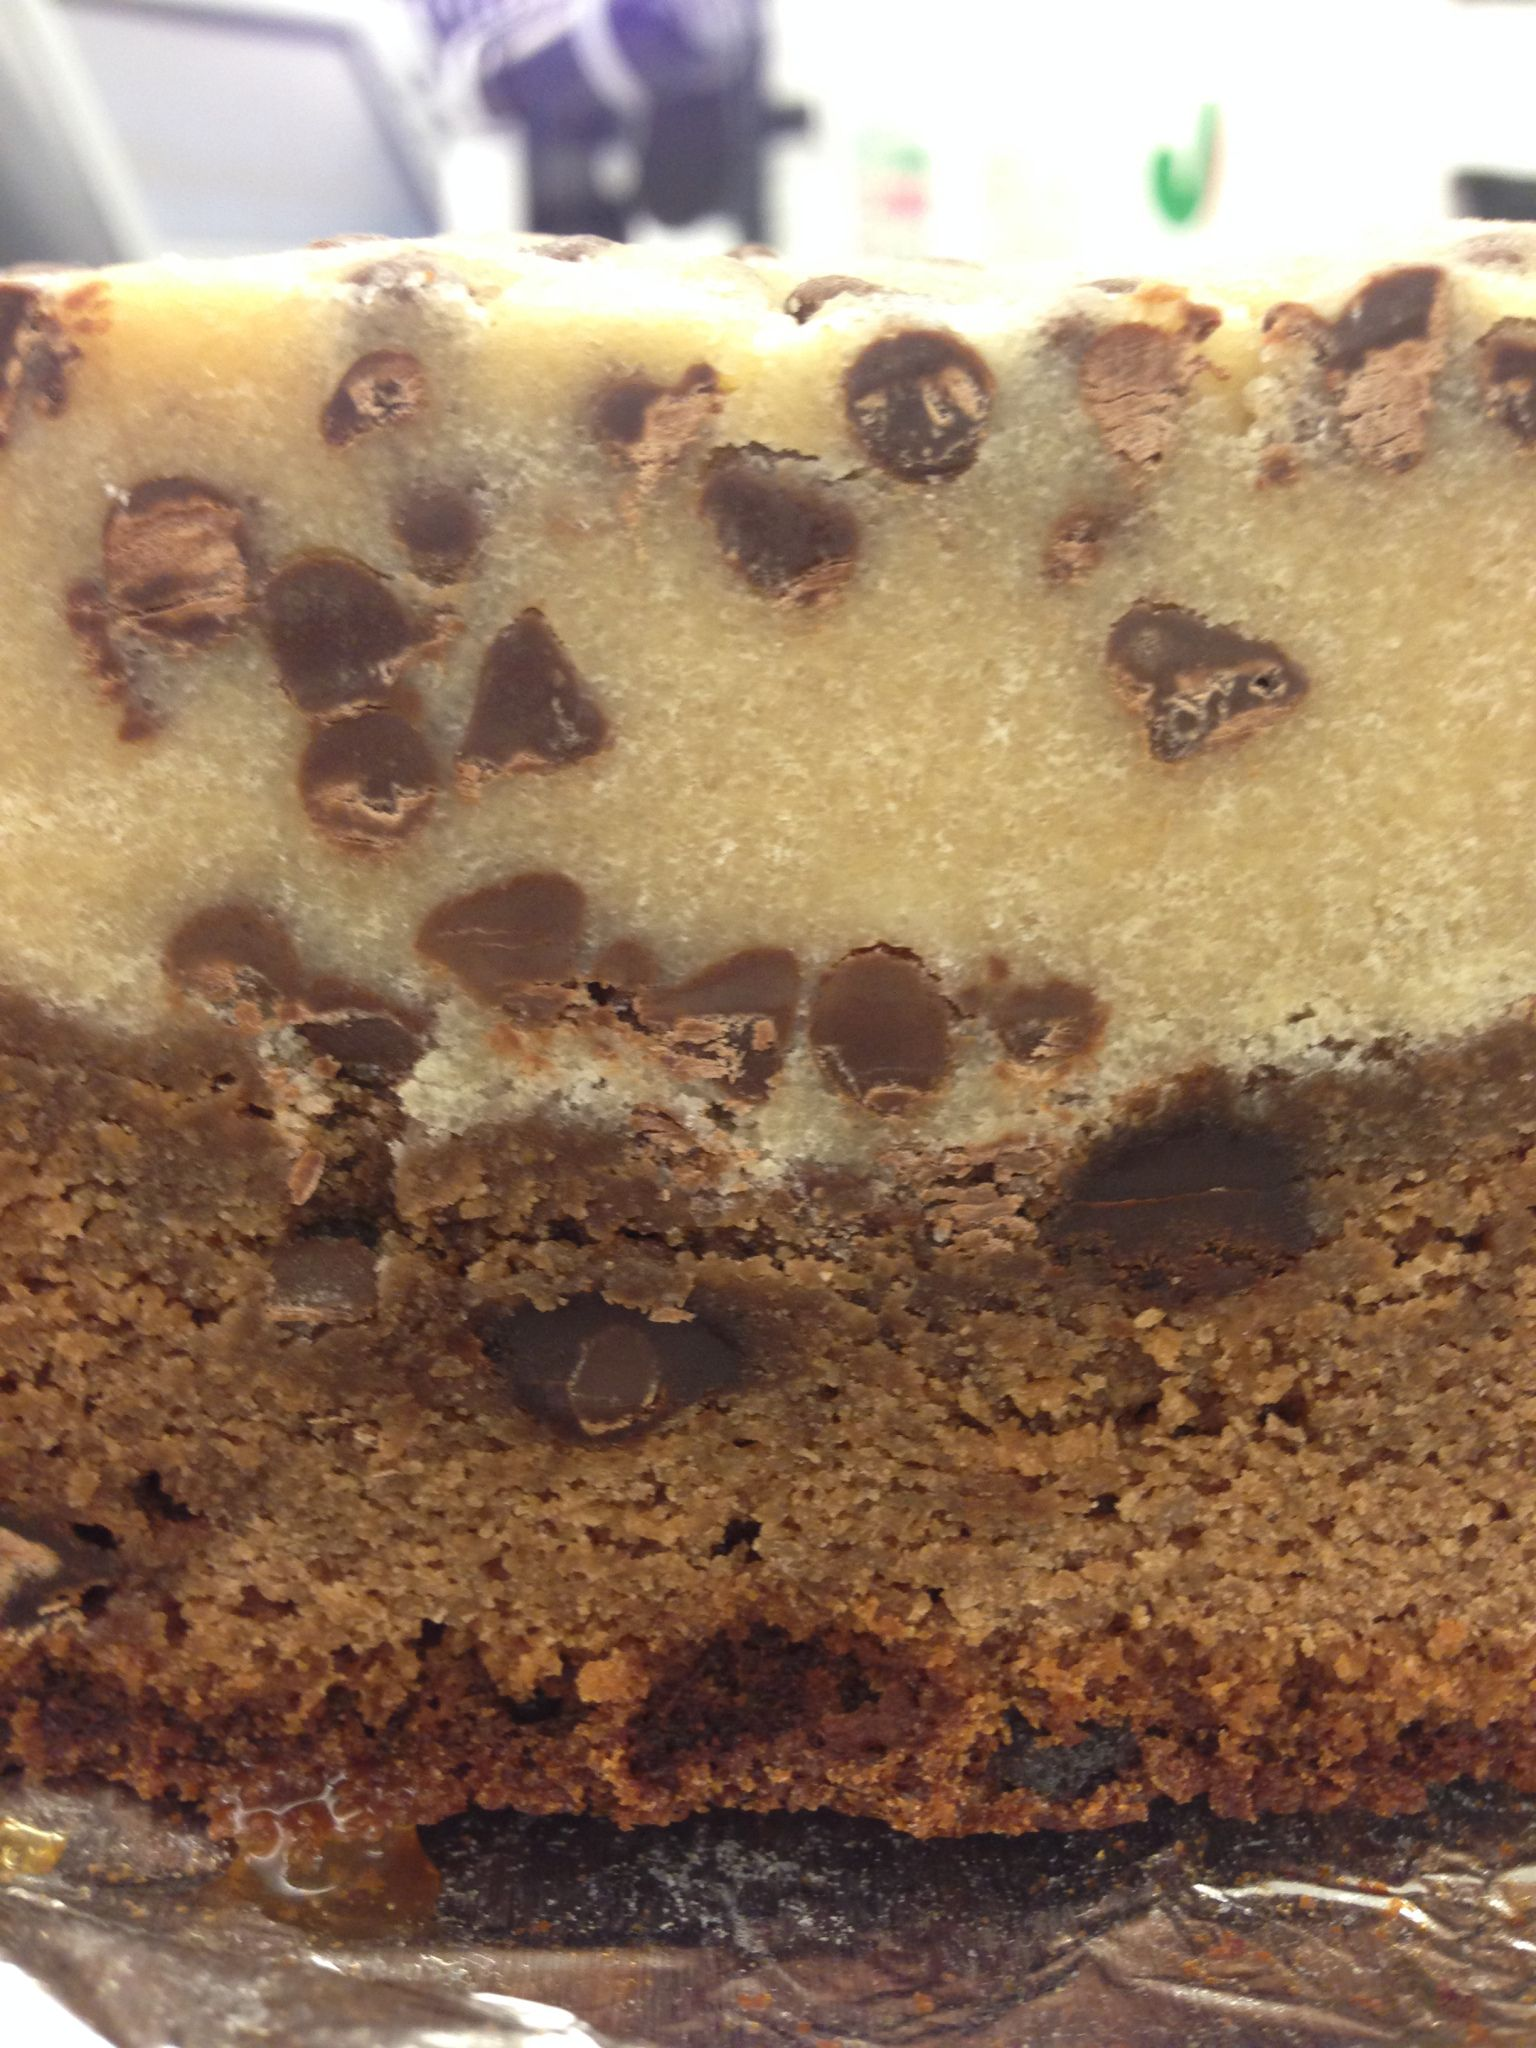 Considering yesterday was national brownie day, I felt a need to acknowledge this wonderful chocolate treat. I chose to celebrate by making these chocolate chip cookie dough brownies. The surprisin…